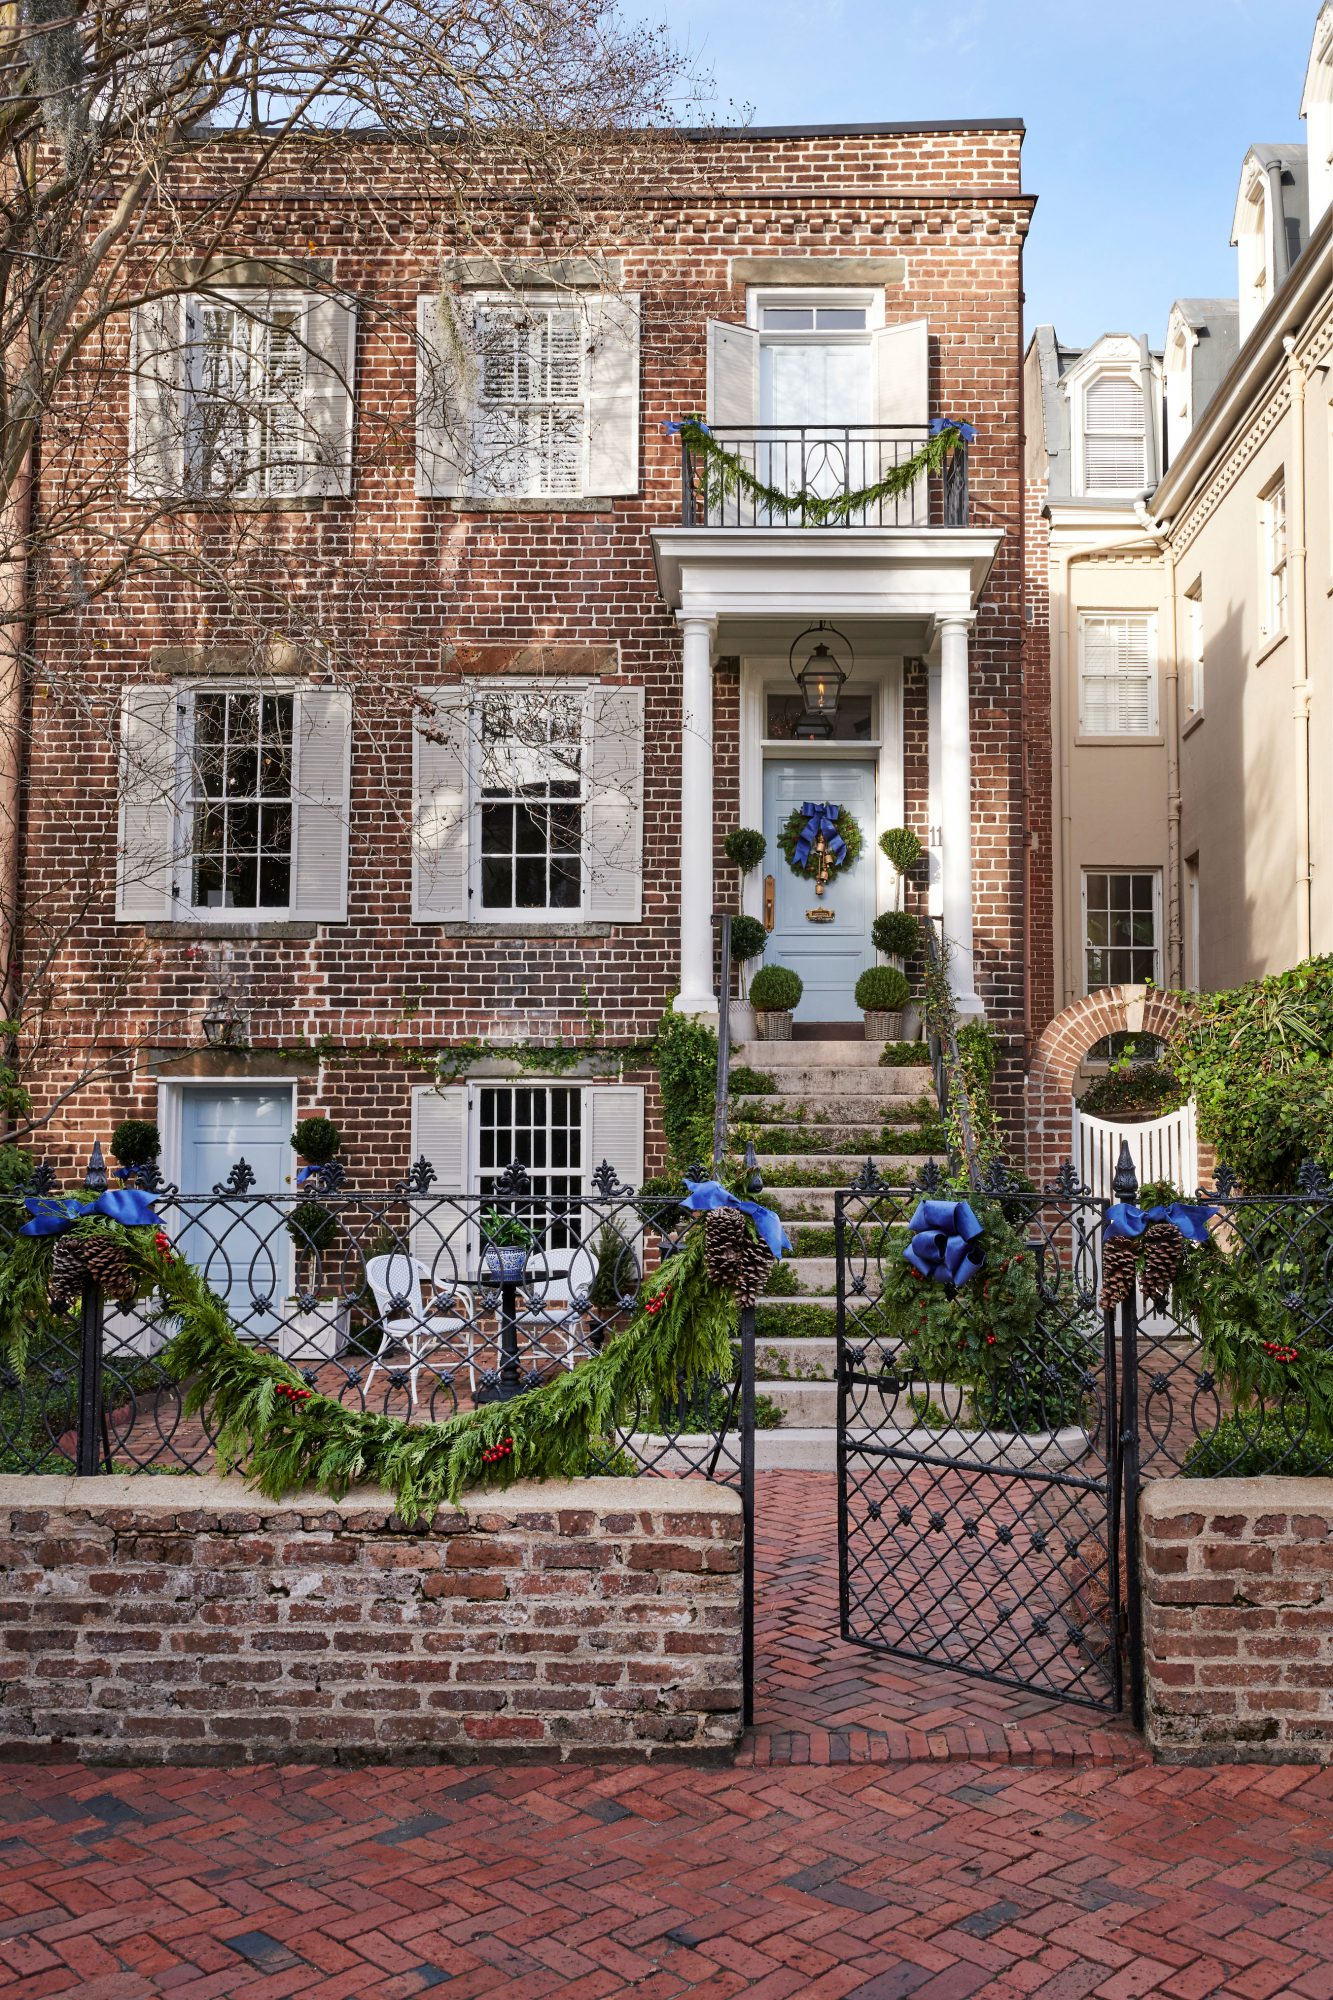 Historic Savannah brick home decorated for Christmas with greenery and blue ribbons